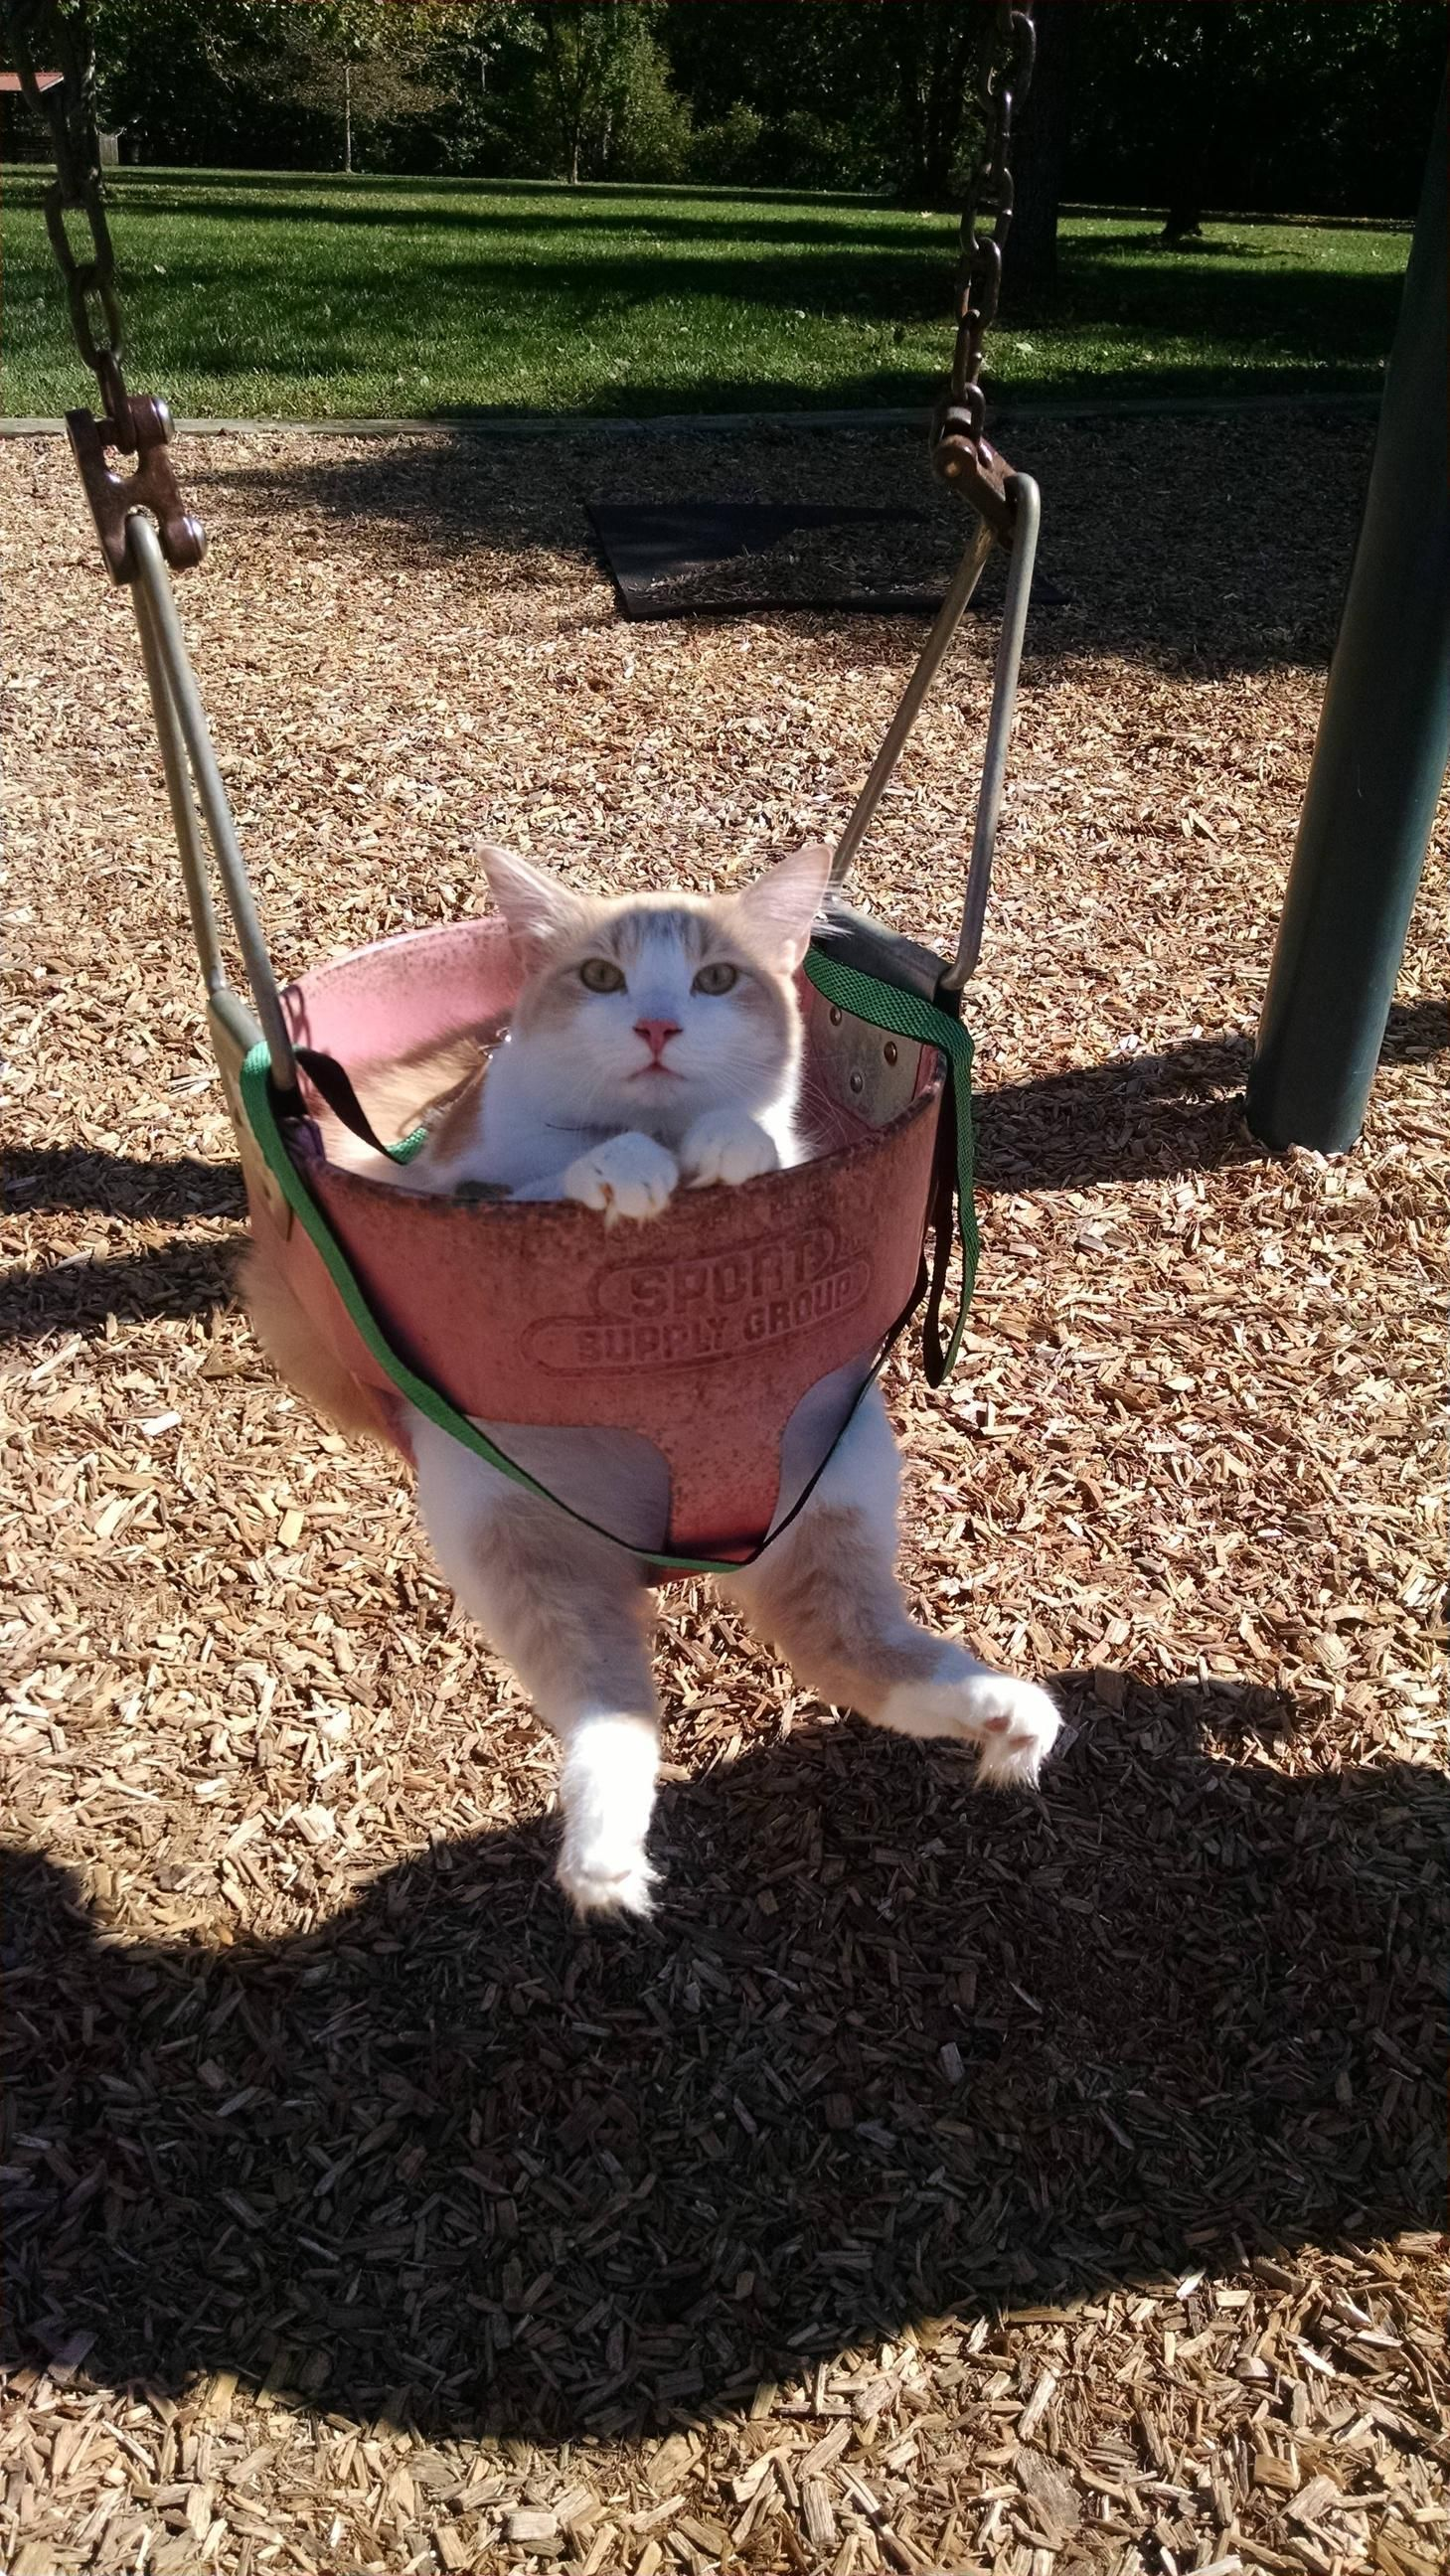 Not only was he swinging, he was on a leash. The most patient cat ever.